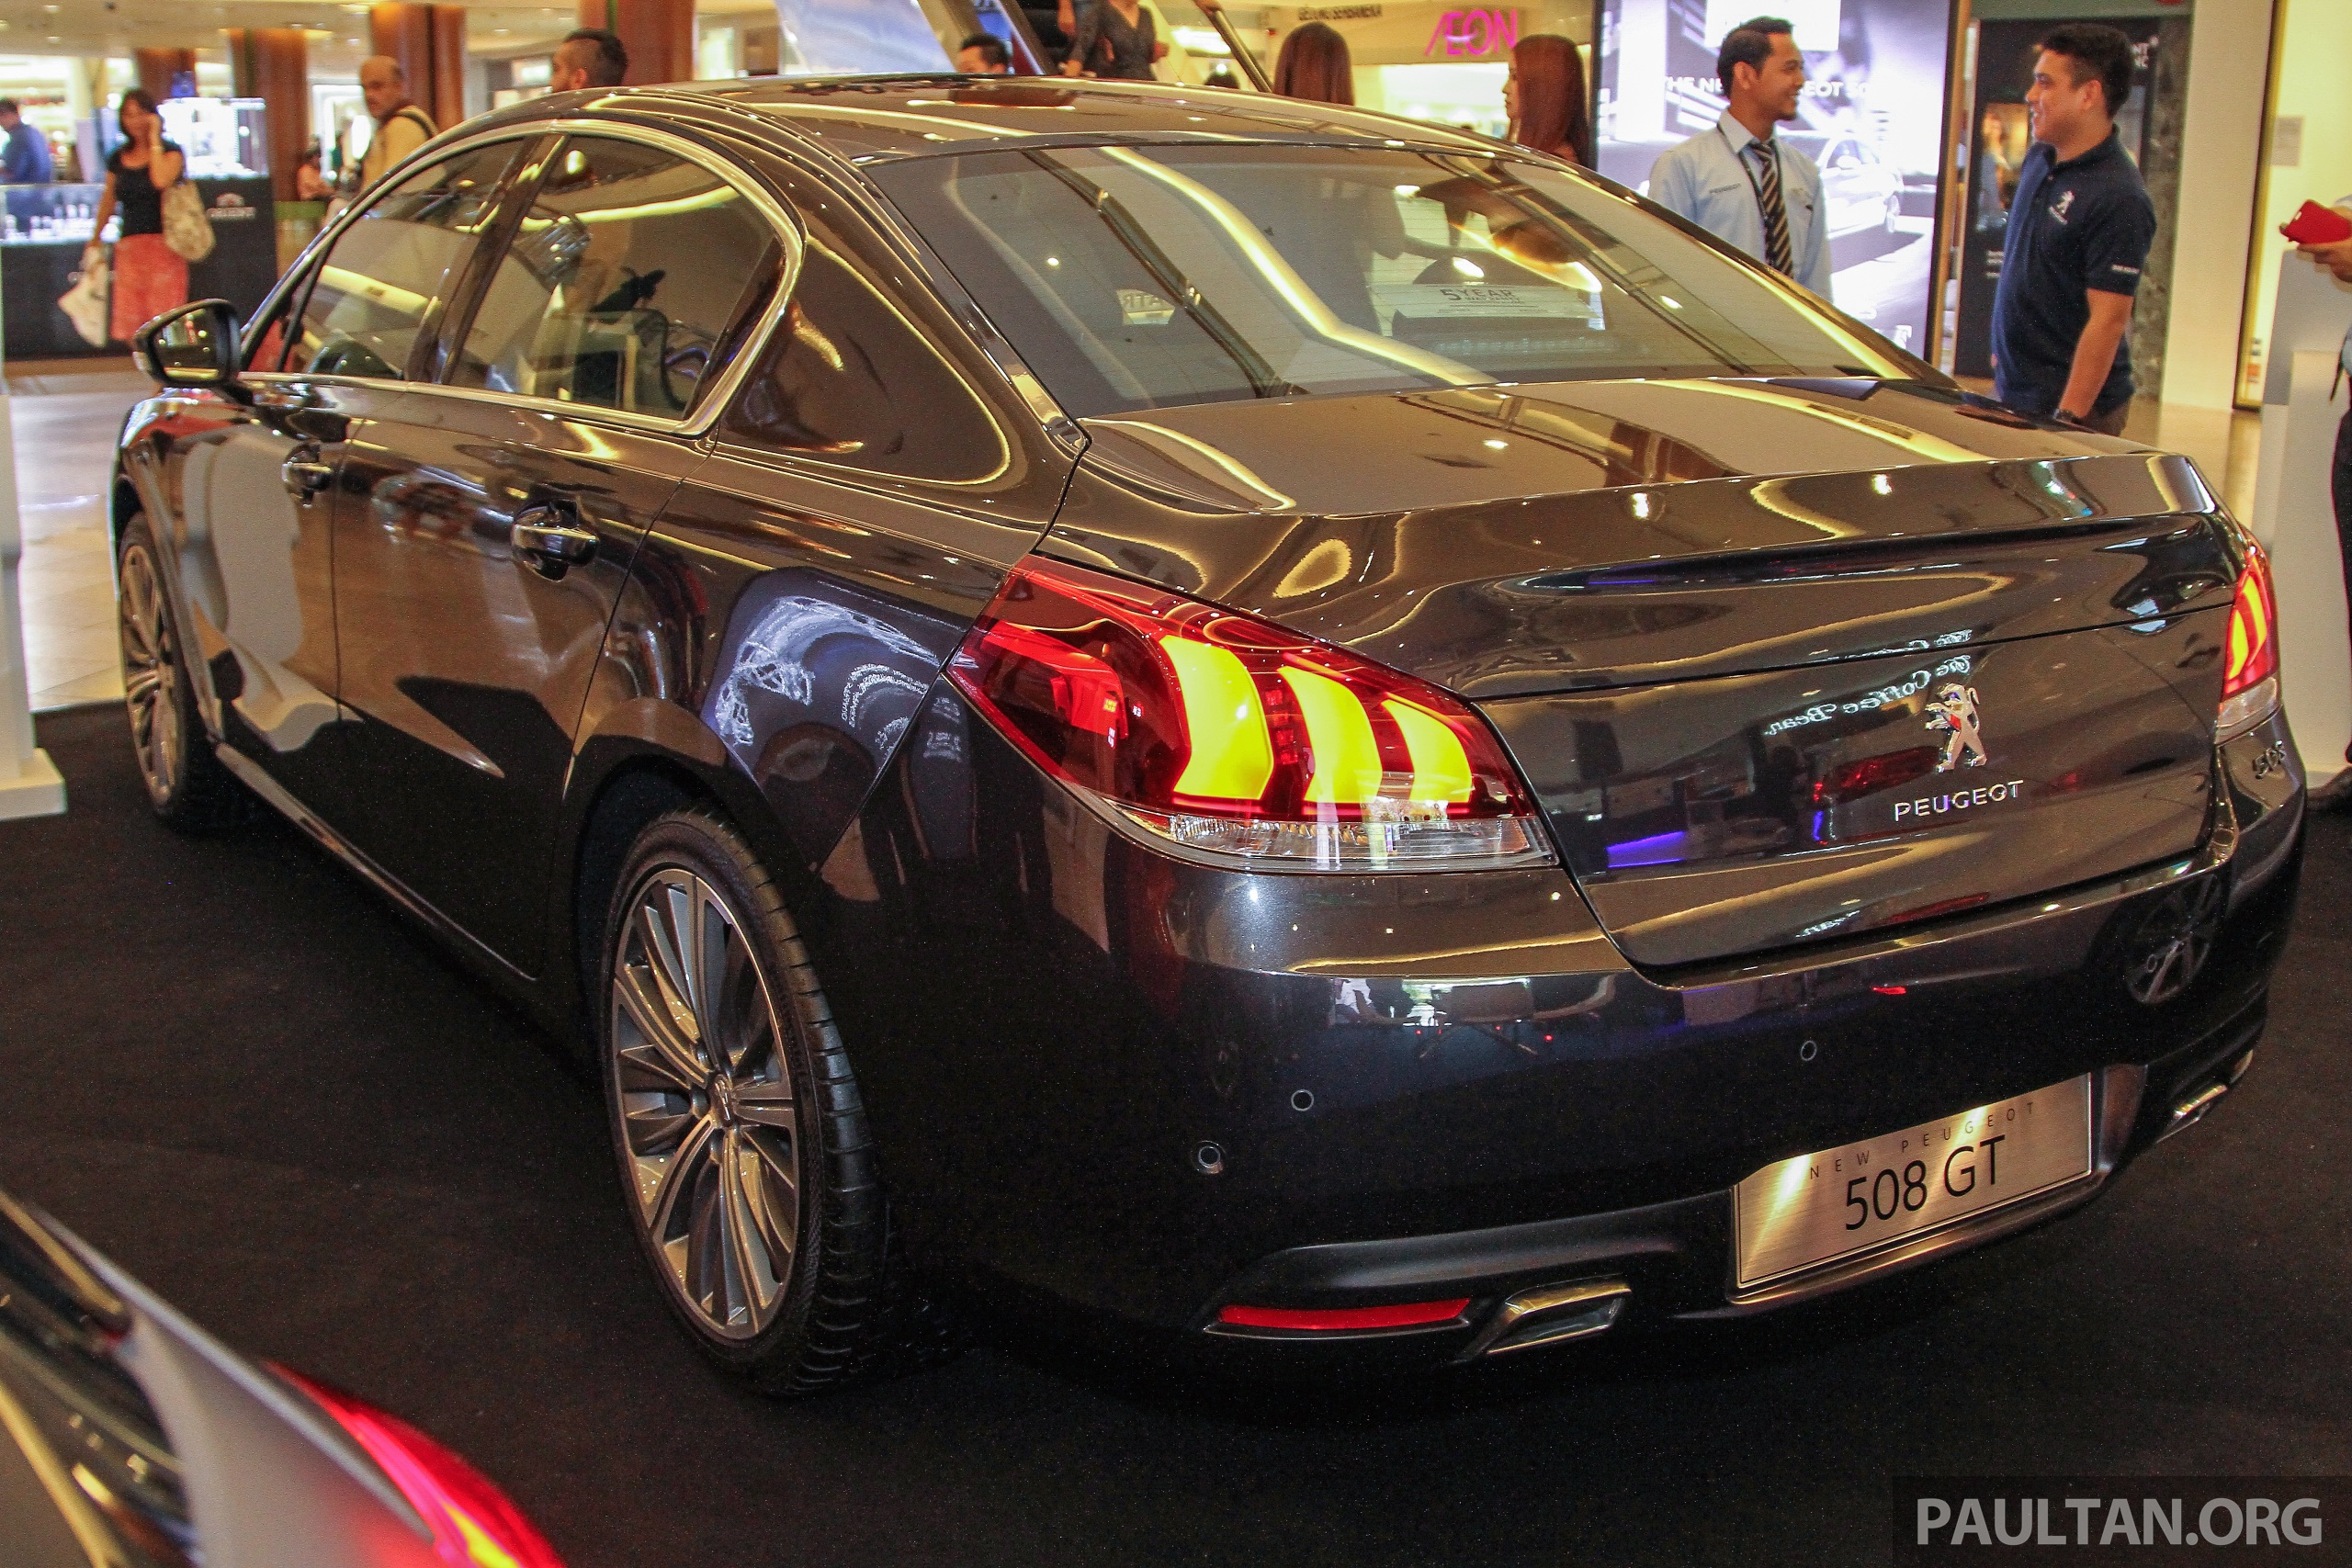 peugeot 508 gt facelift previewed rm205k estimated paul tan image 338546. Black Bedroom Furniture Sets. Home Design Ideas